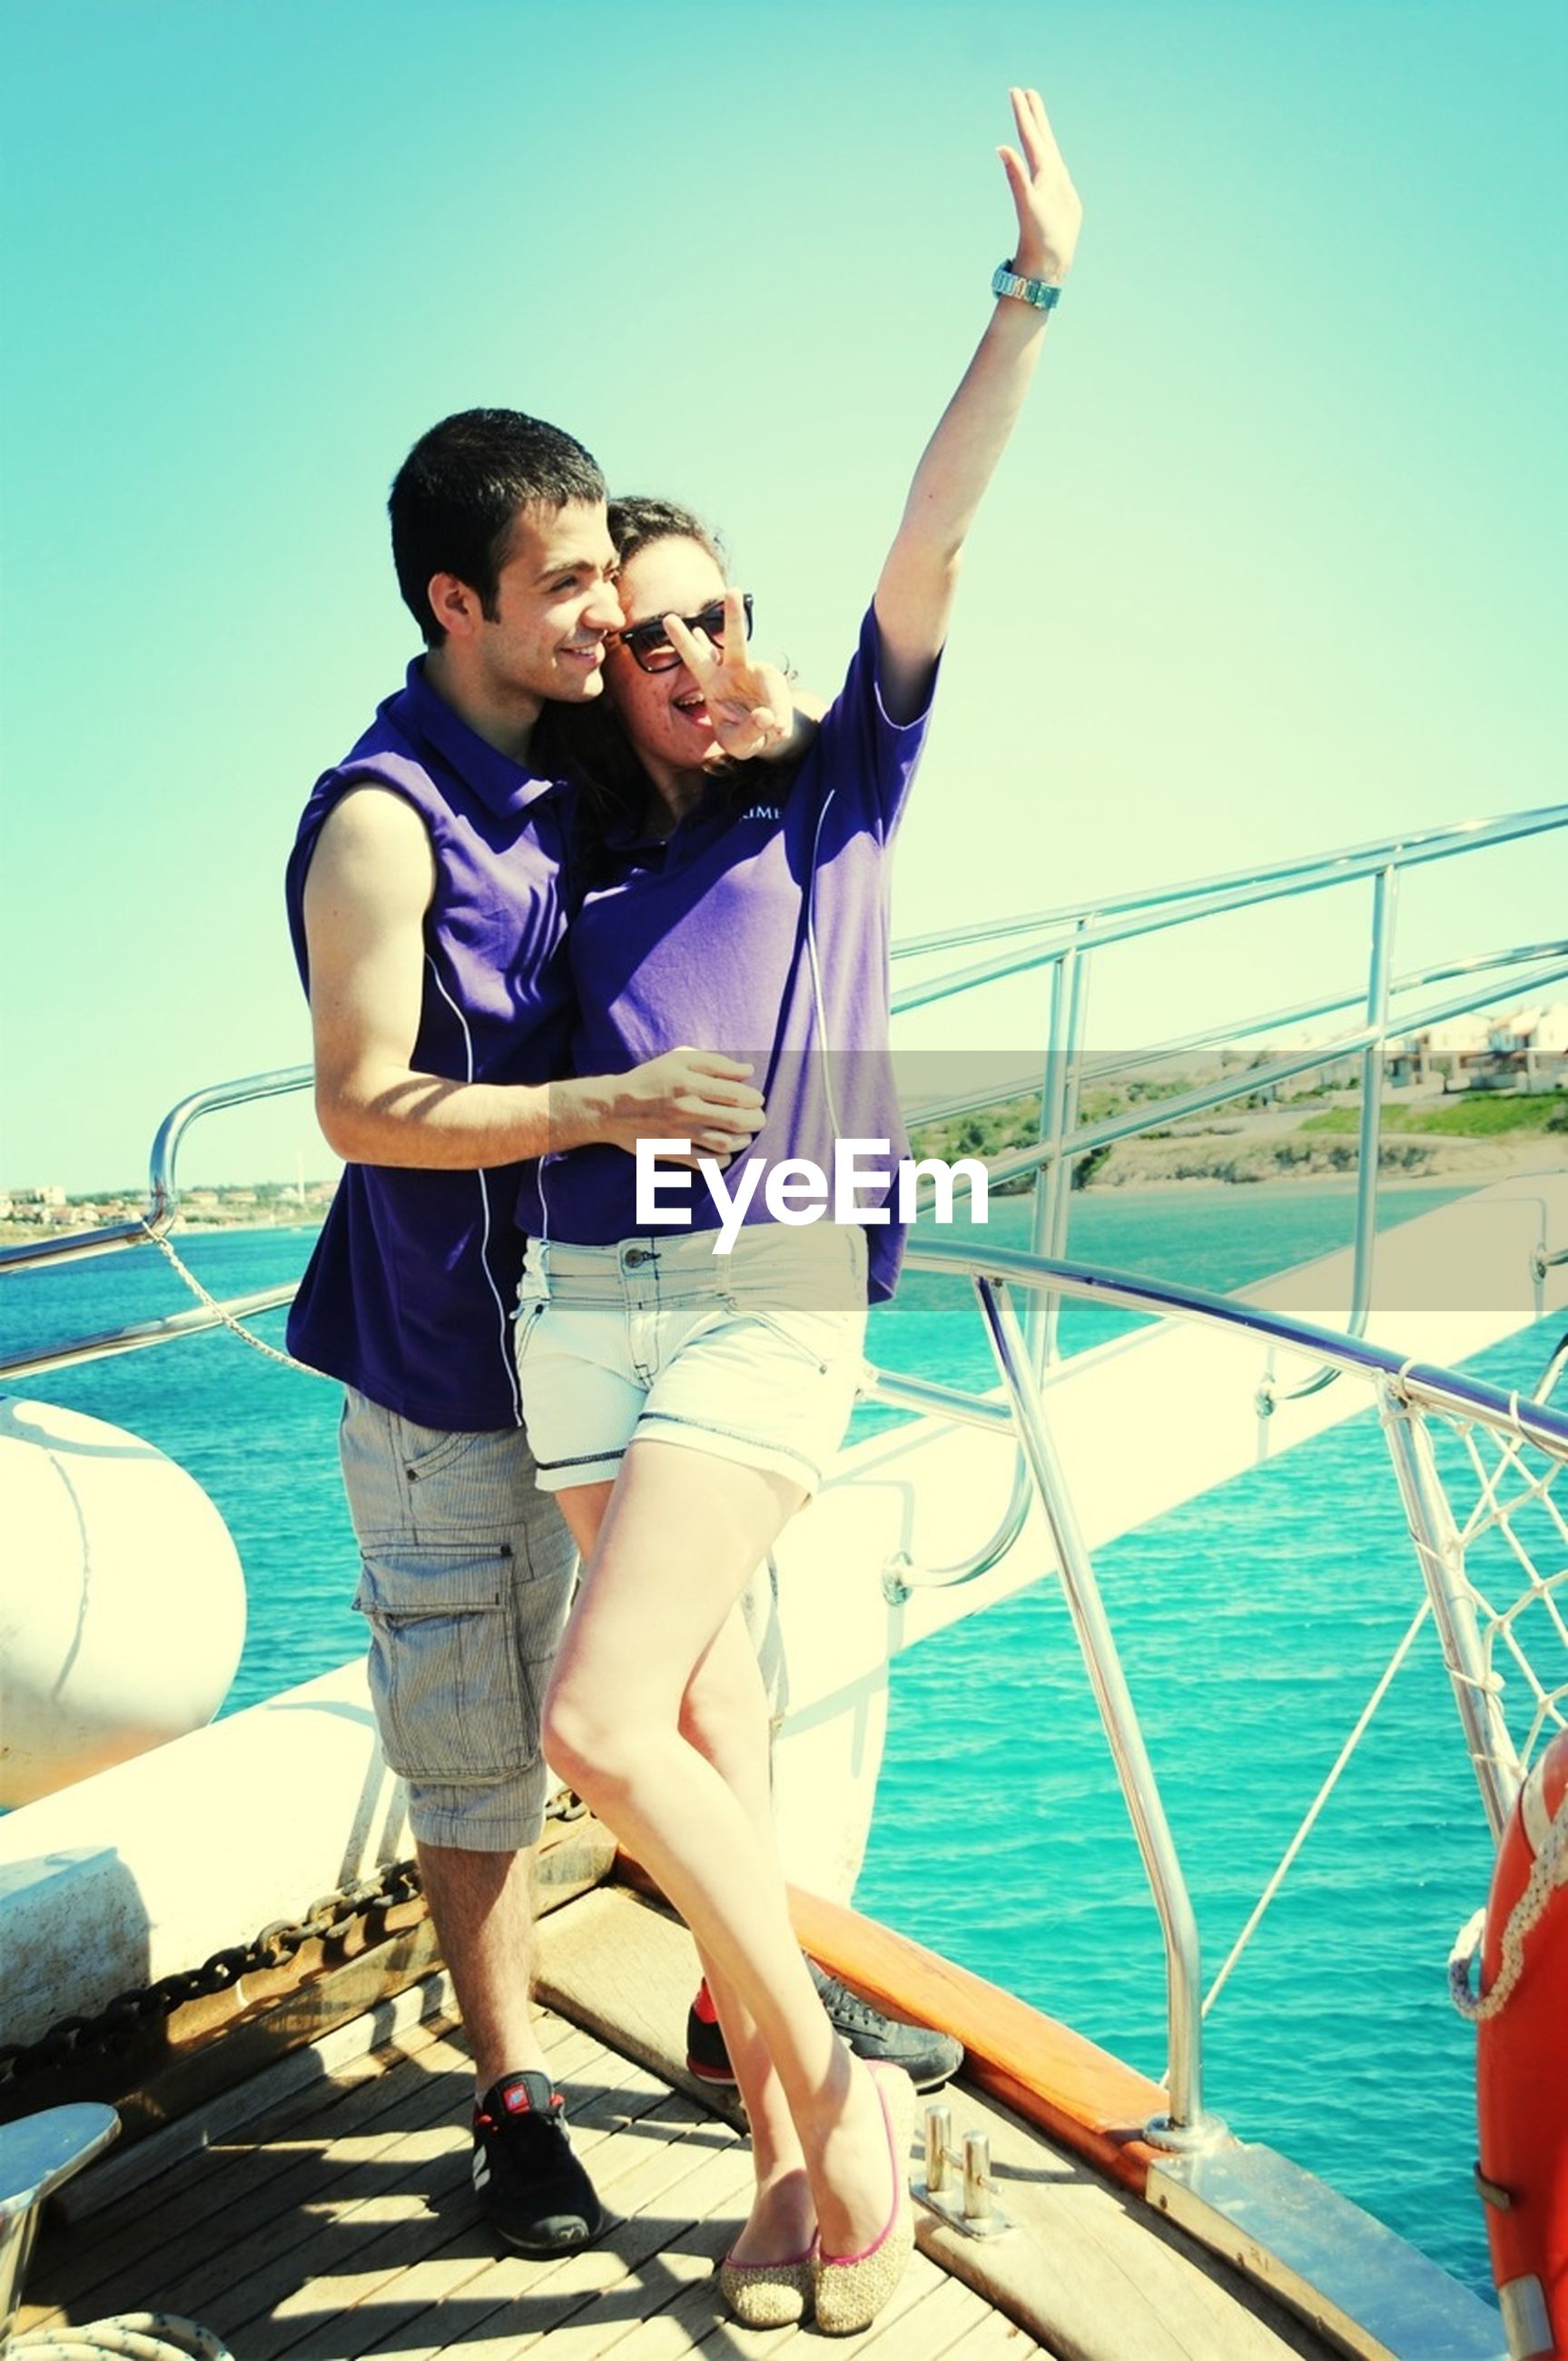 lifestyles, leisure activity, full length, young adult, casual clothing, person, water, togetherness, young women, enjoyment, vacations, fun, bonding, happiness, sea, smiling